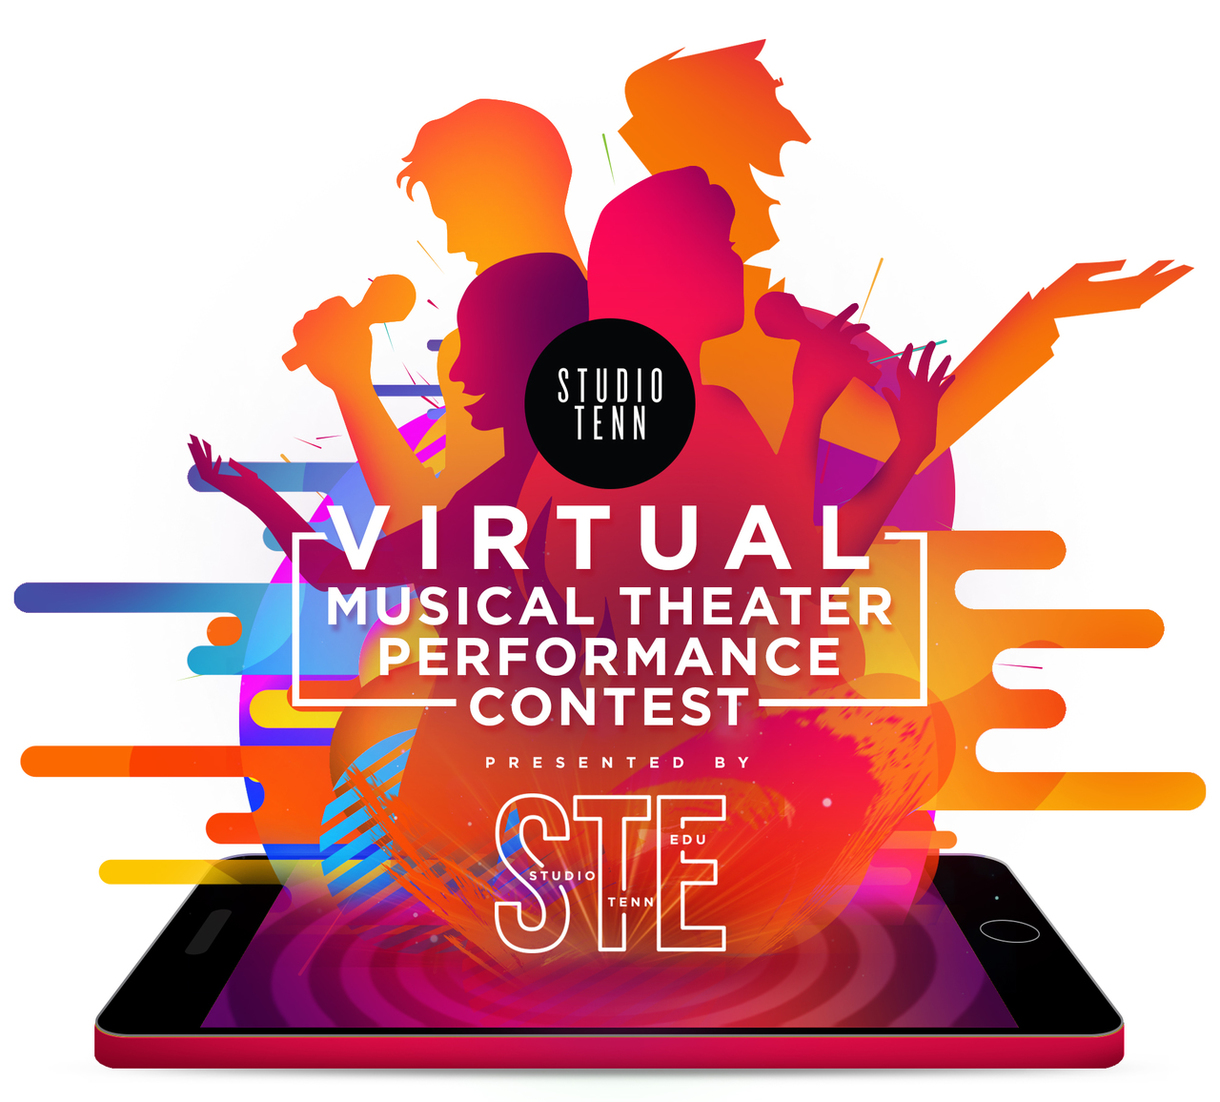 Virtual Musical Theatre Performance Contest